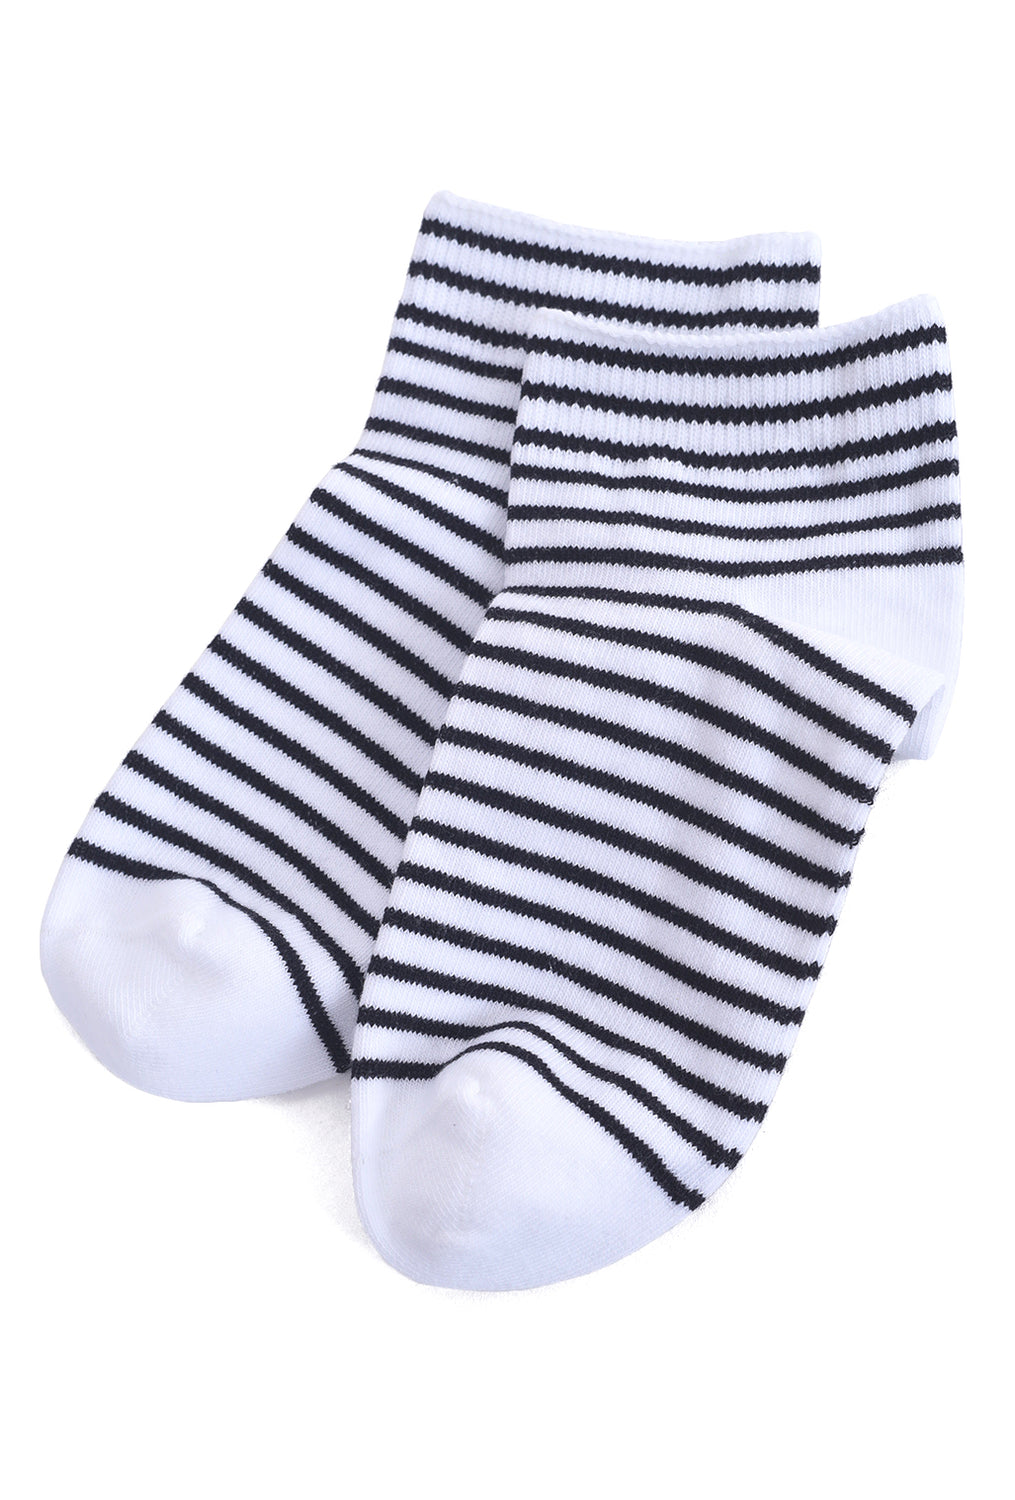 Little River Sock Mill Striped Bootie, White/Black One Size White